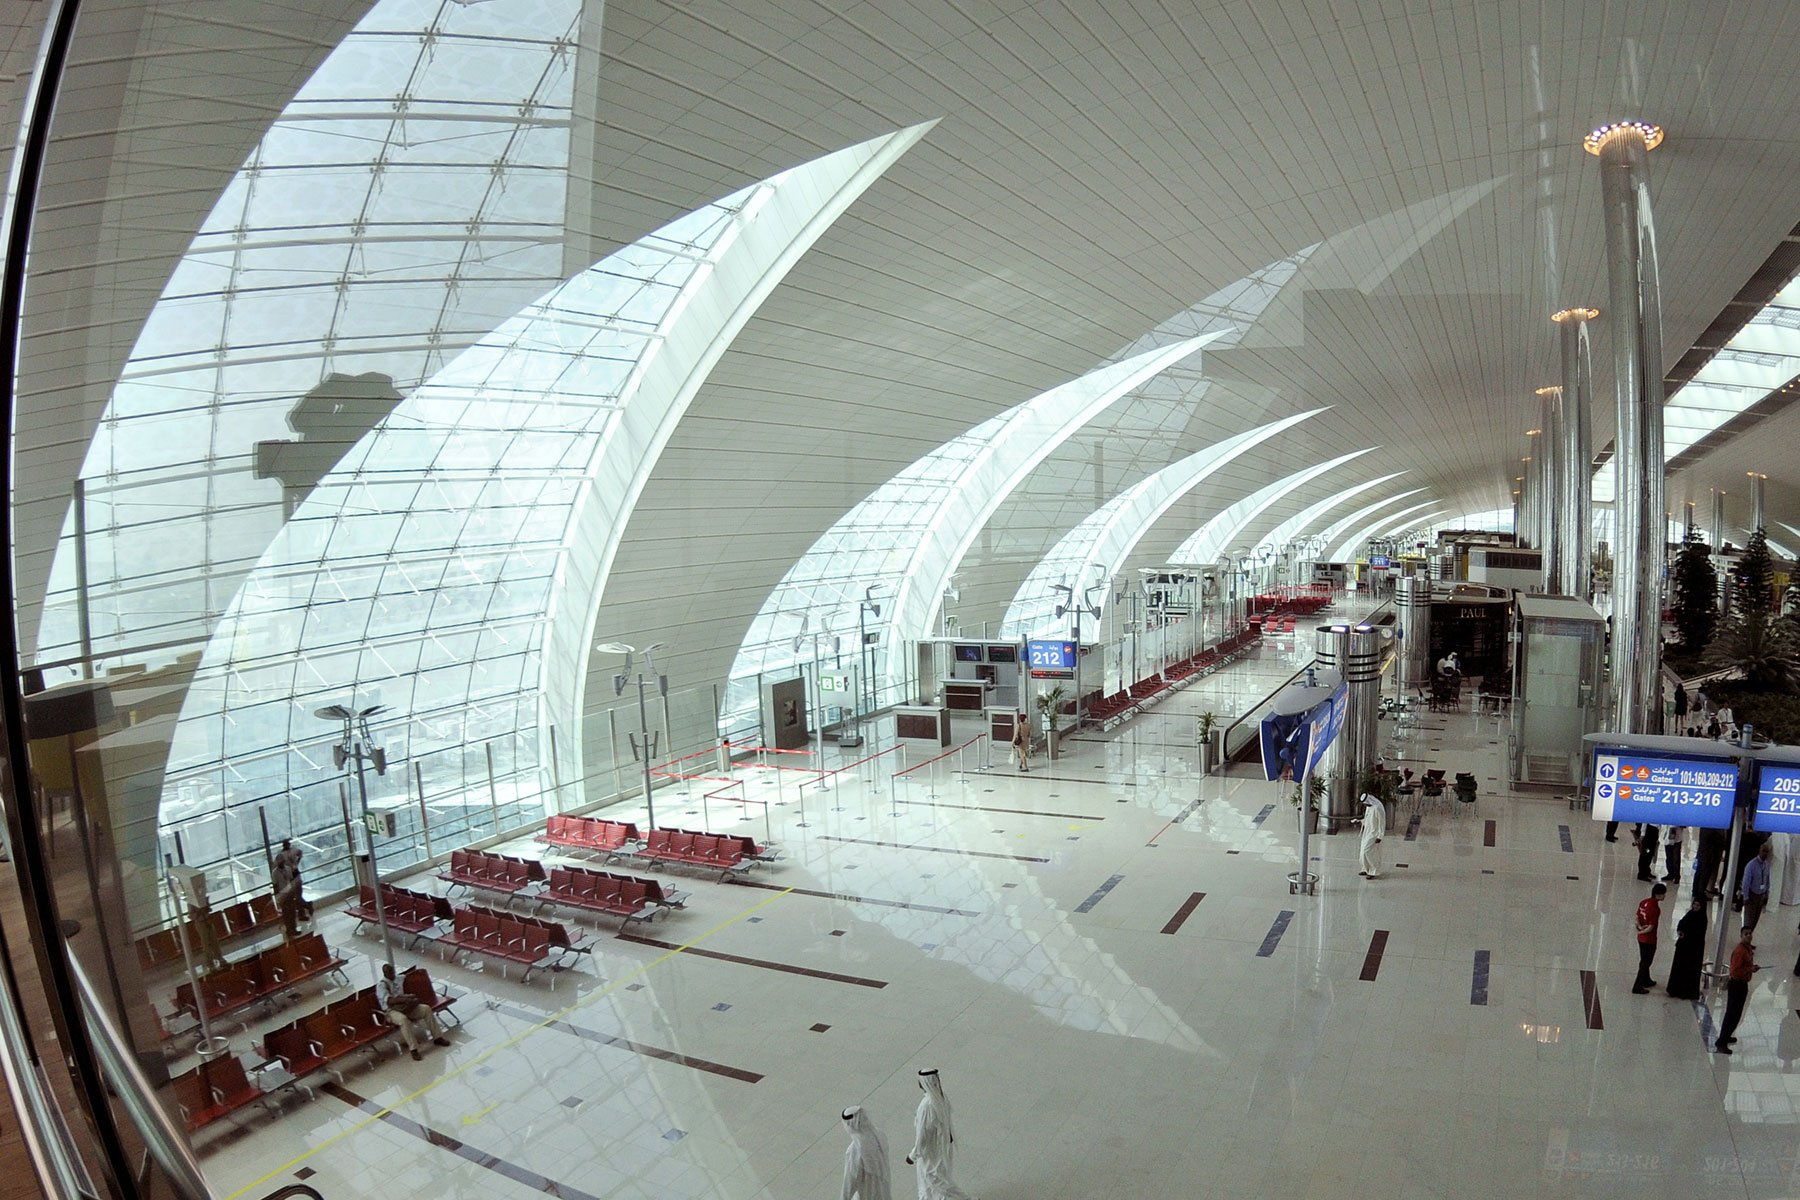 dubai international airport Passengers visiting dubai millennium dubai airport millennium dubai airport is located near the airport terminal millennium dubai airport hotel is a perfect place to stay on a short stopover in dubai it is also a convenient place to hold a business meeting while visiting dubai.